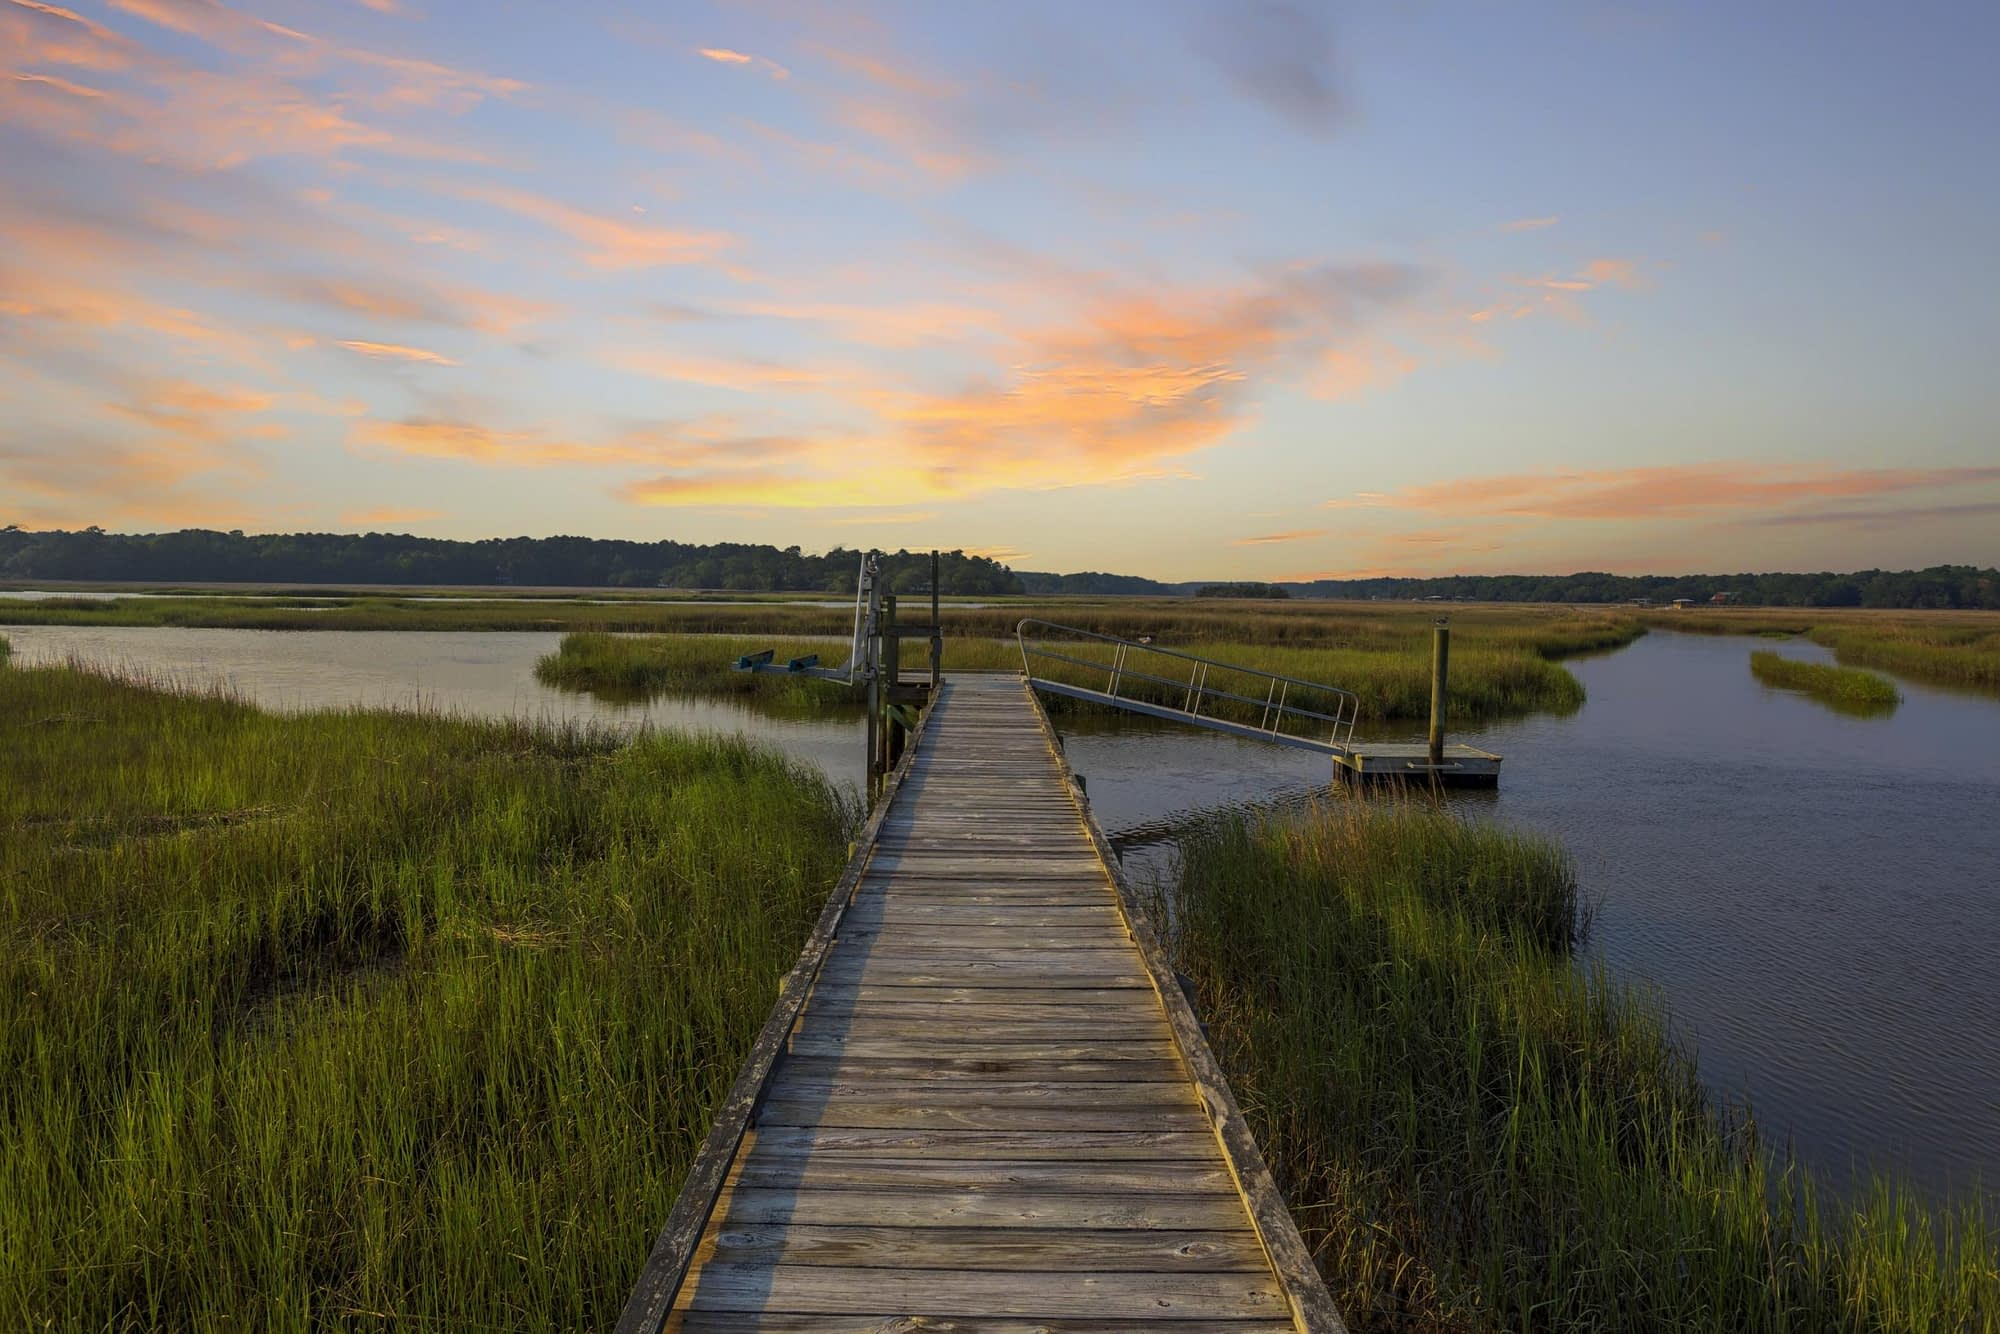 Real Estate Beaufort, SC   Dobyns Realty   Realty Beaufort SC